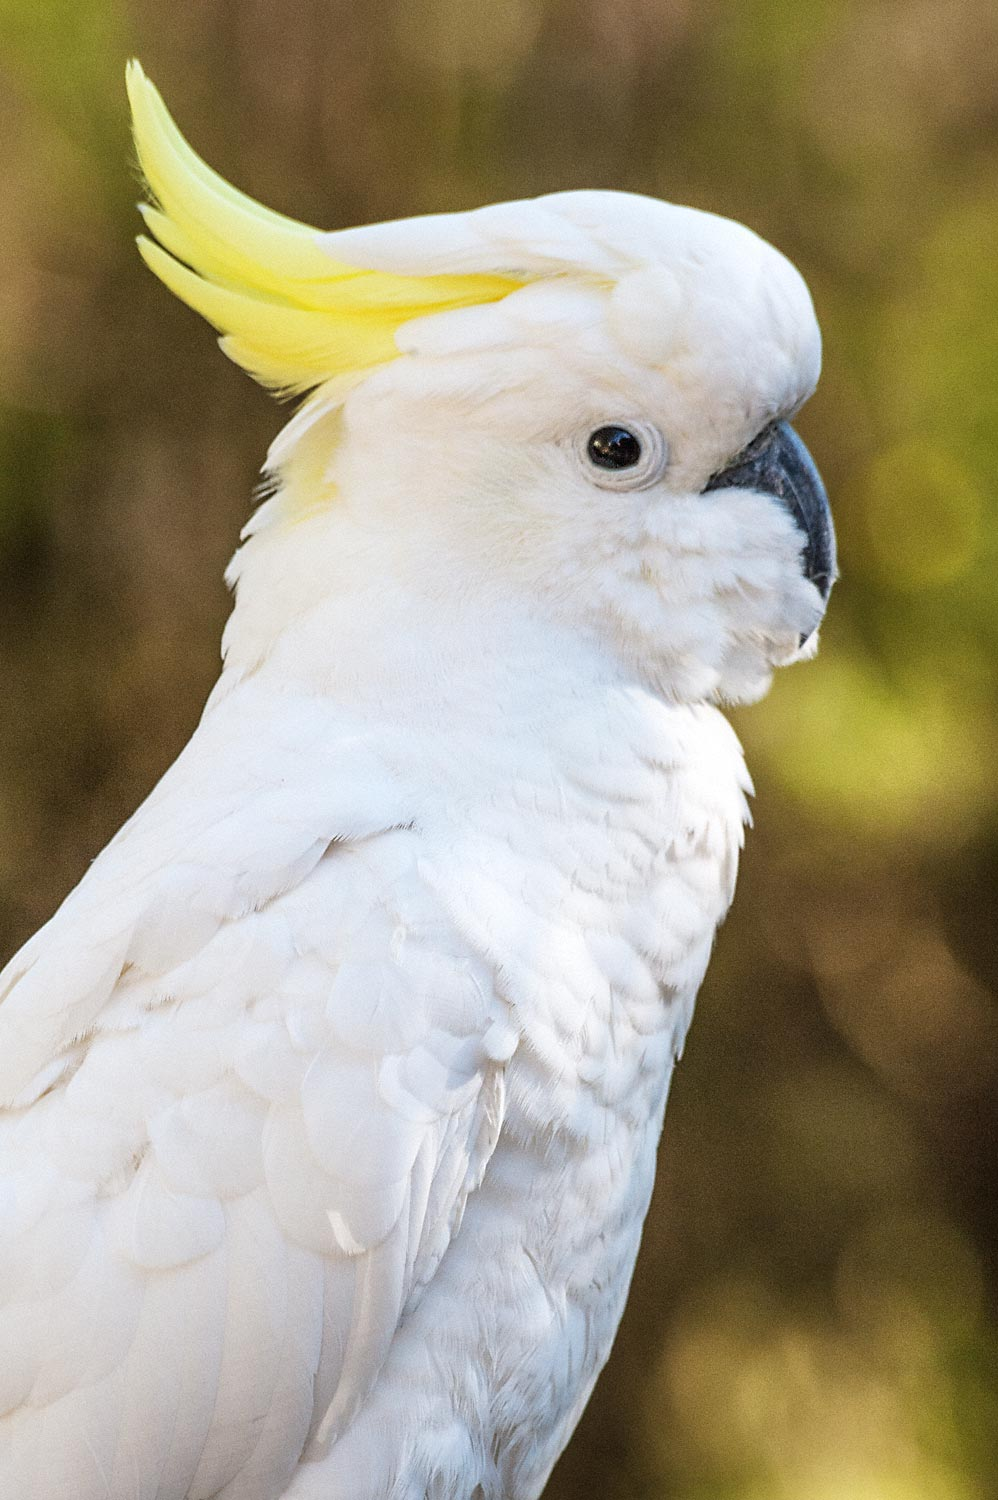 Warren-Hinder-Cockatoo-Leura-Cascades-Area.jpg